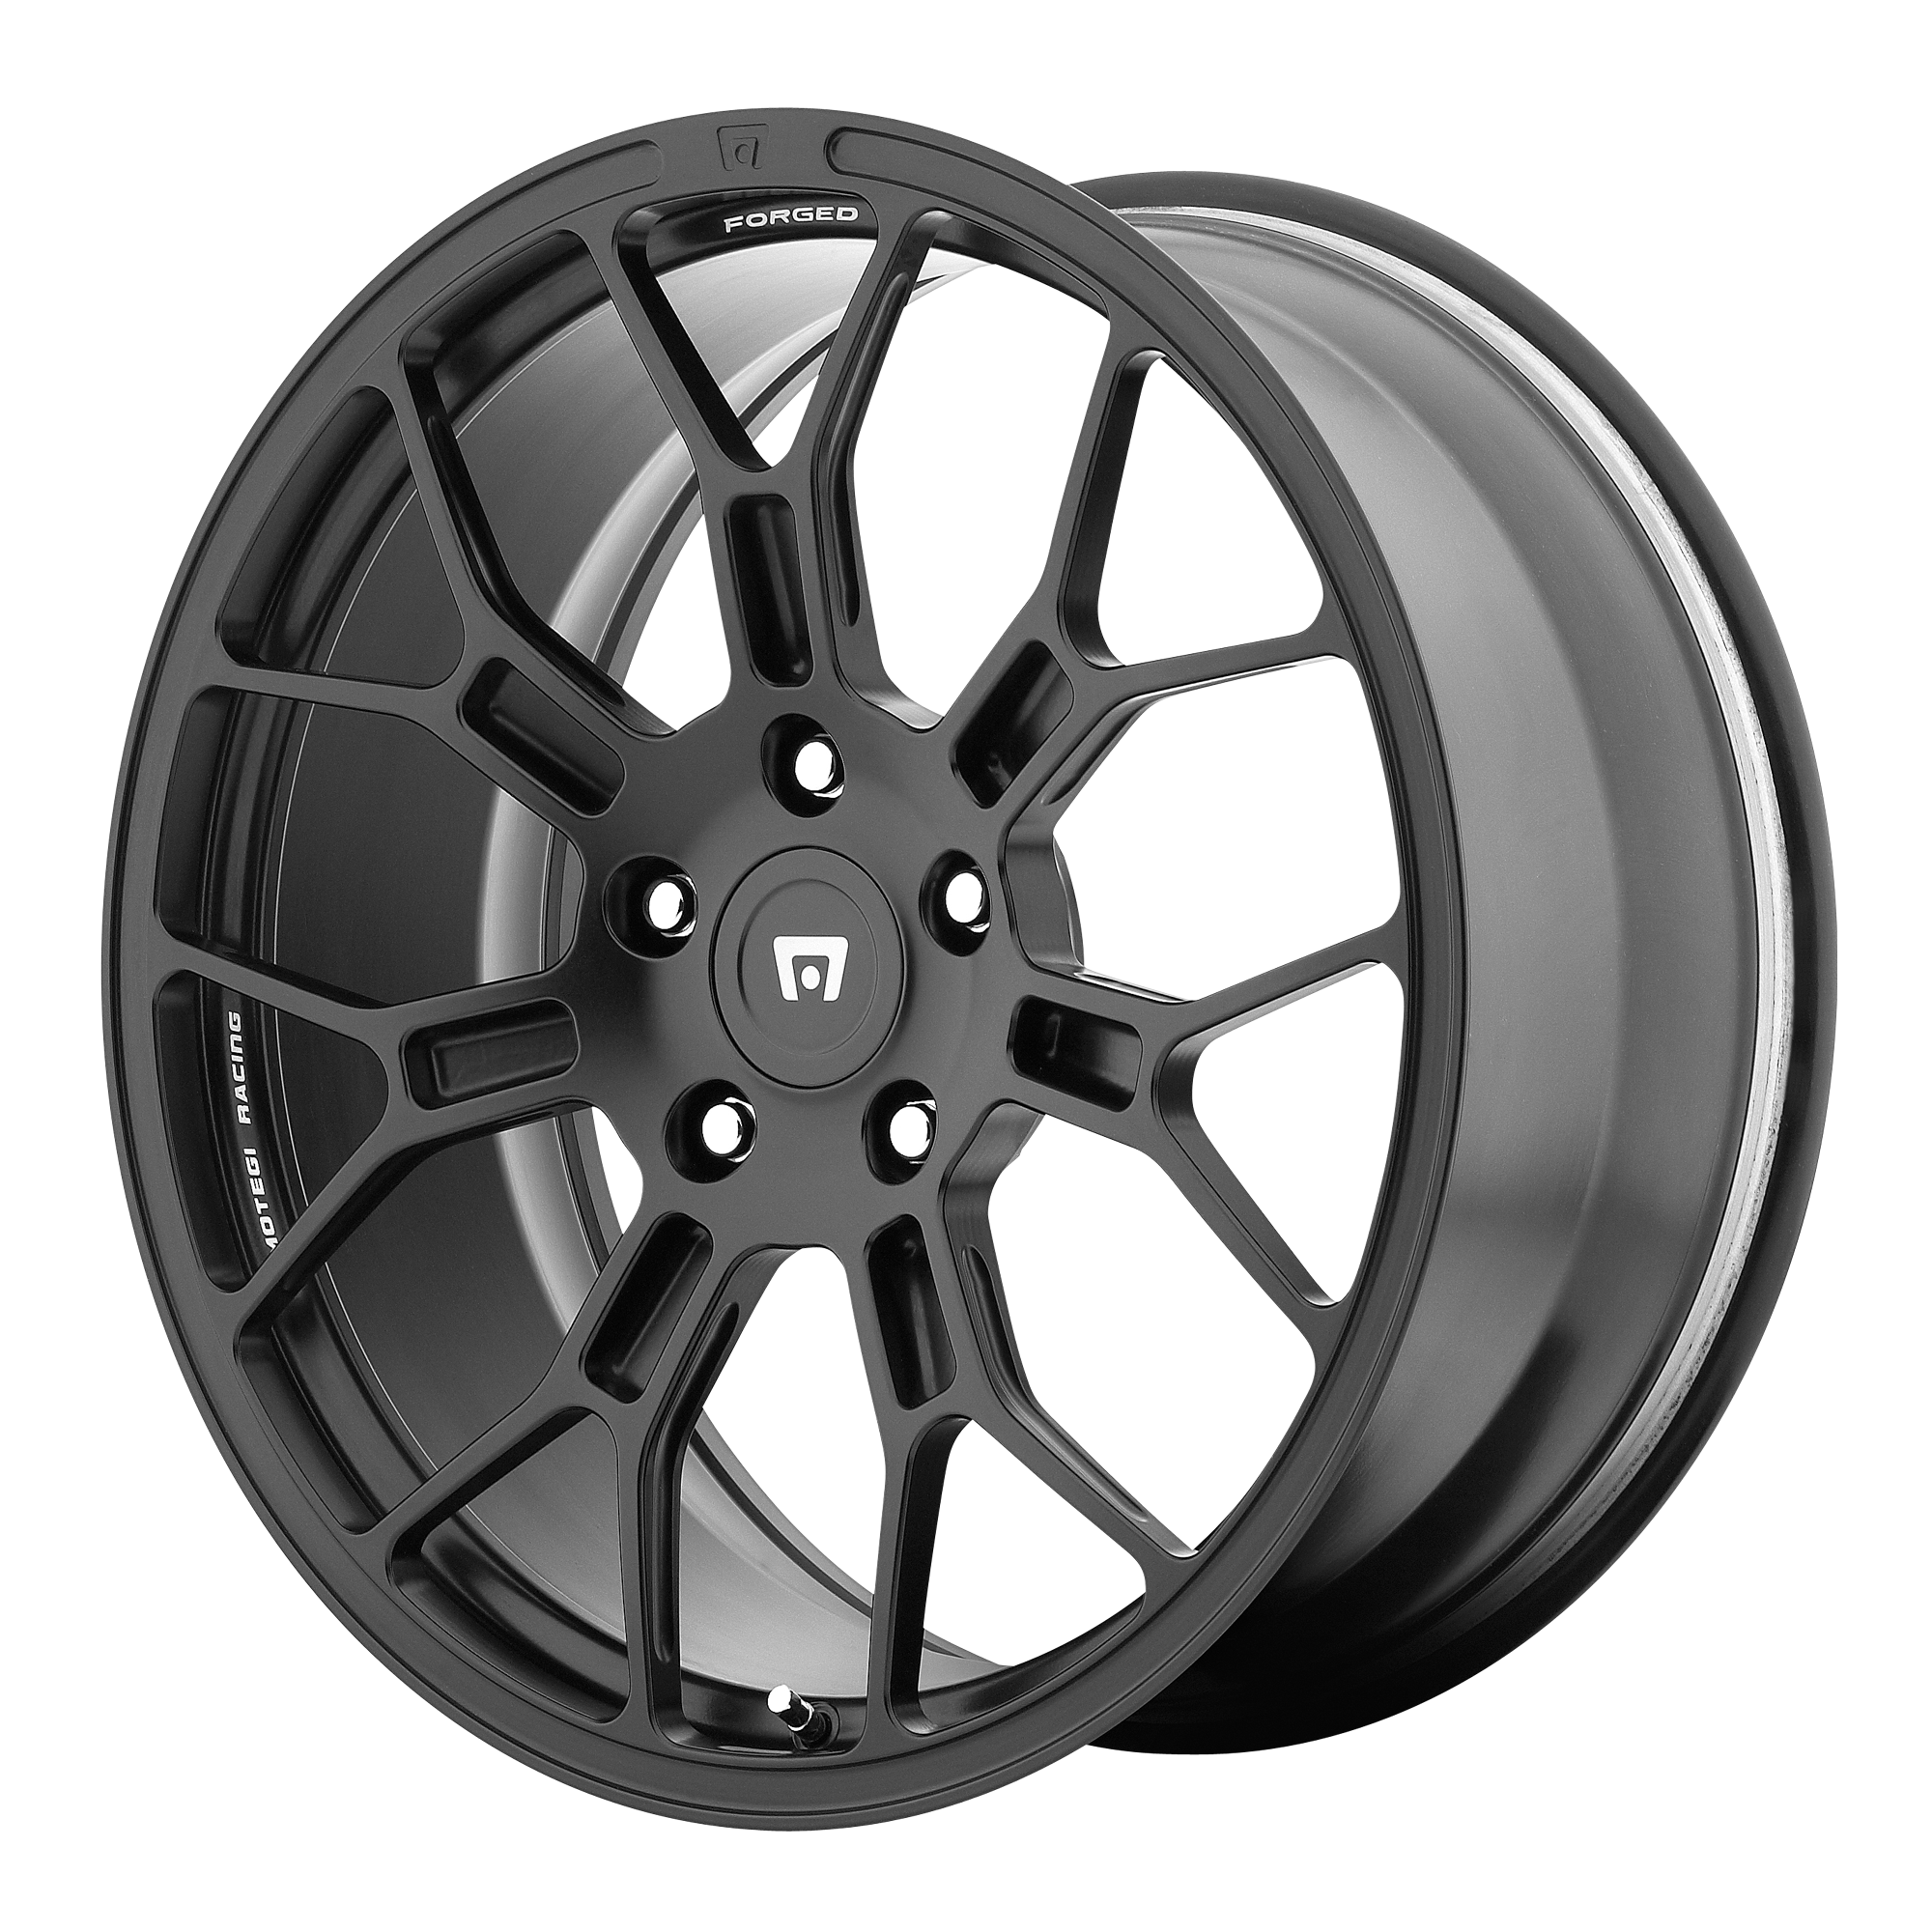 Motegi Racing Wheels MR130 Techno Mesh Satin Black